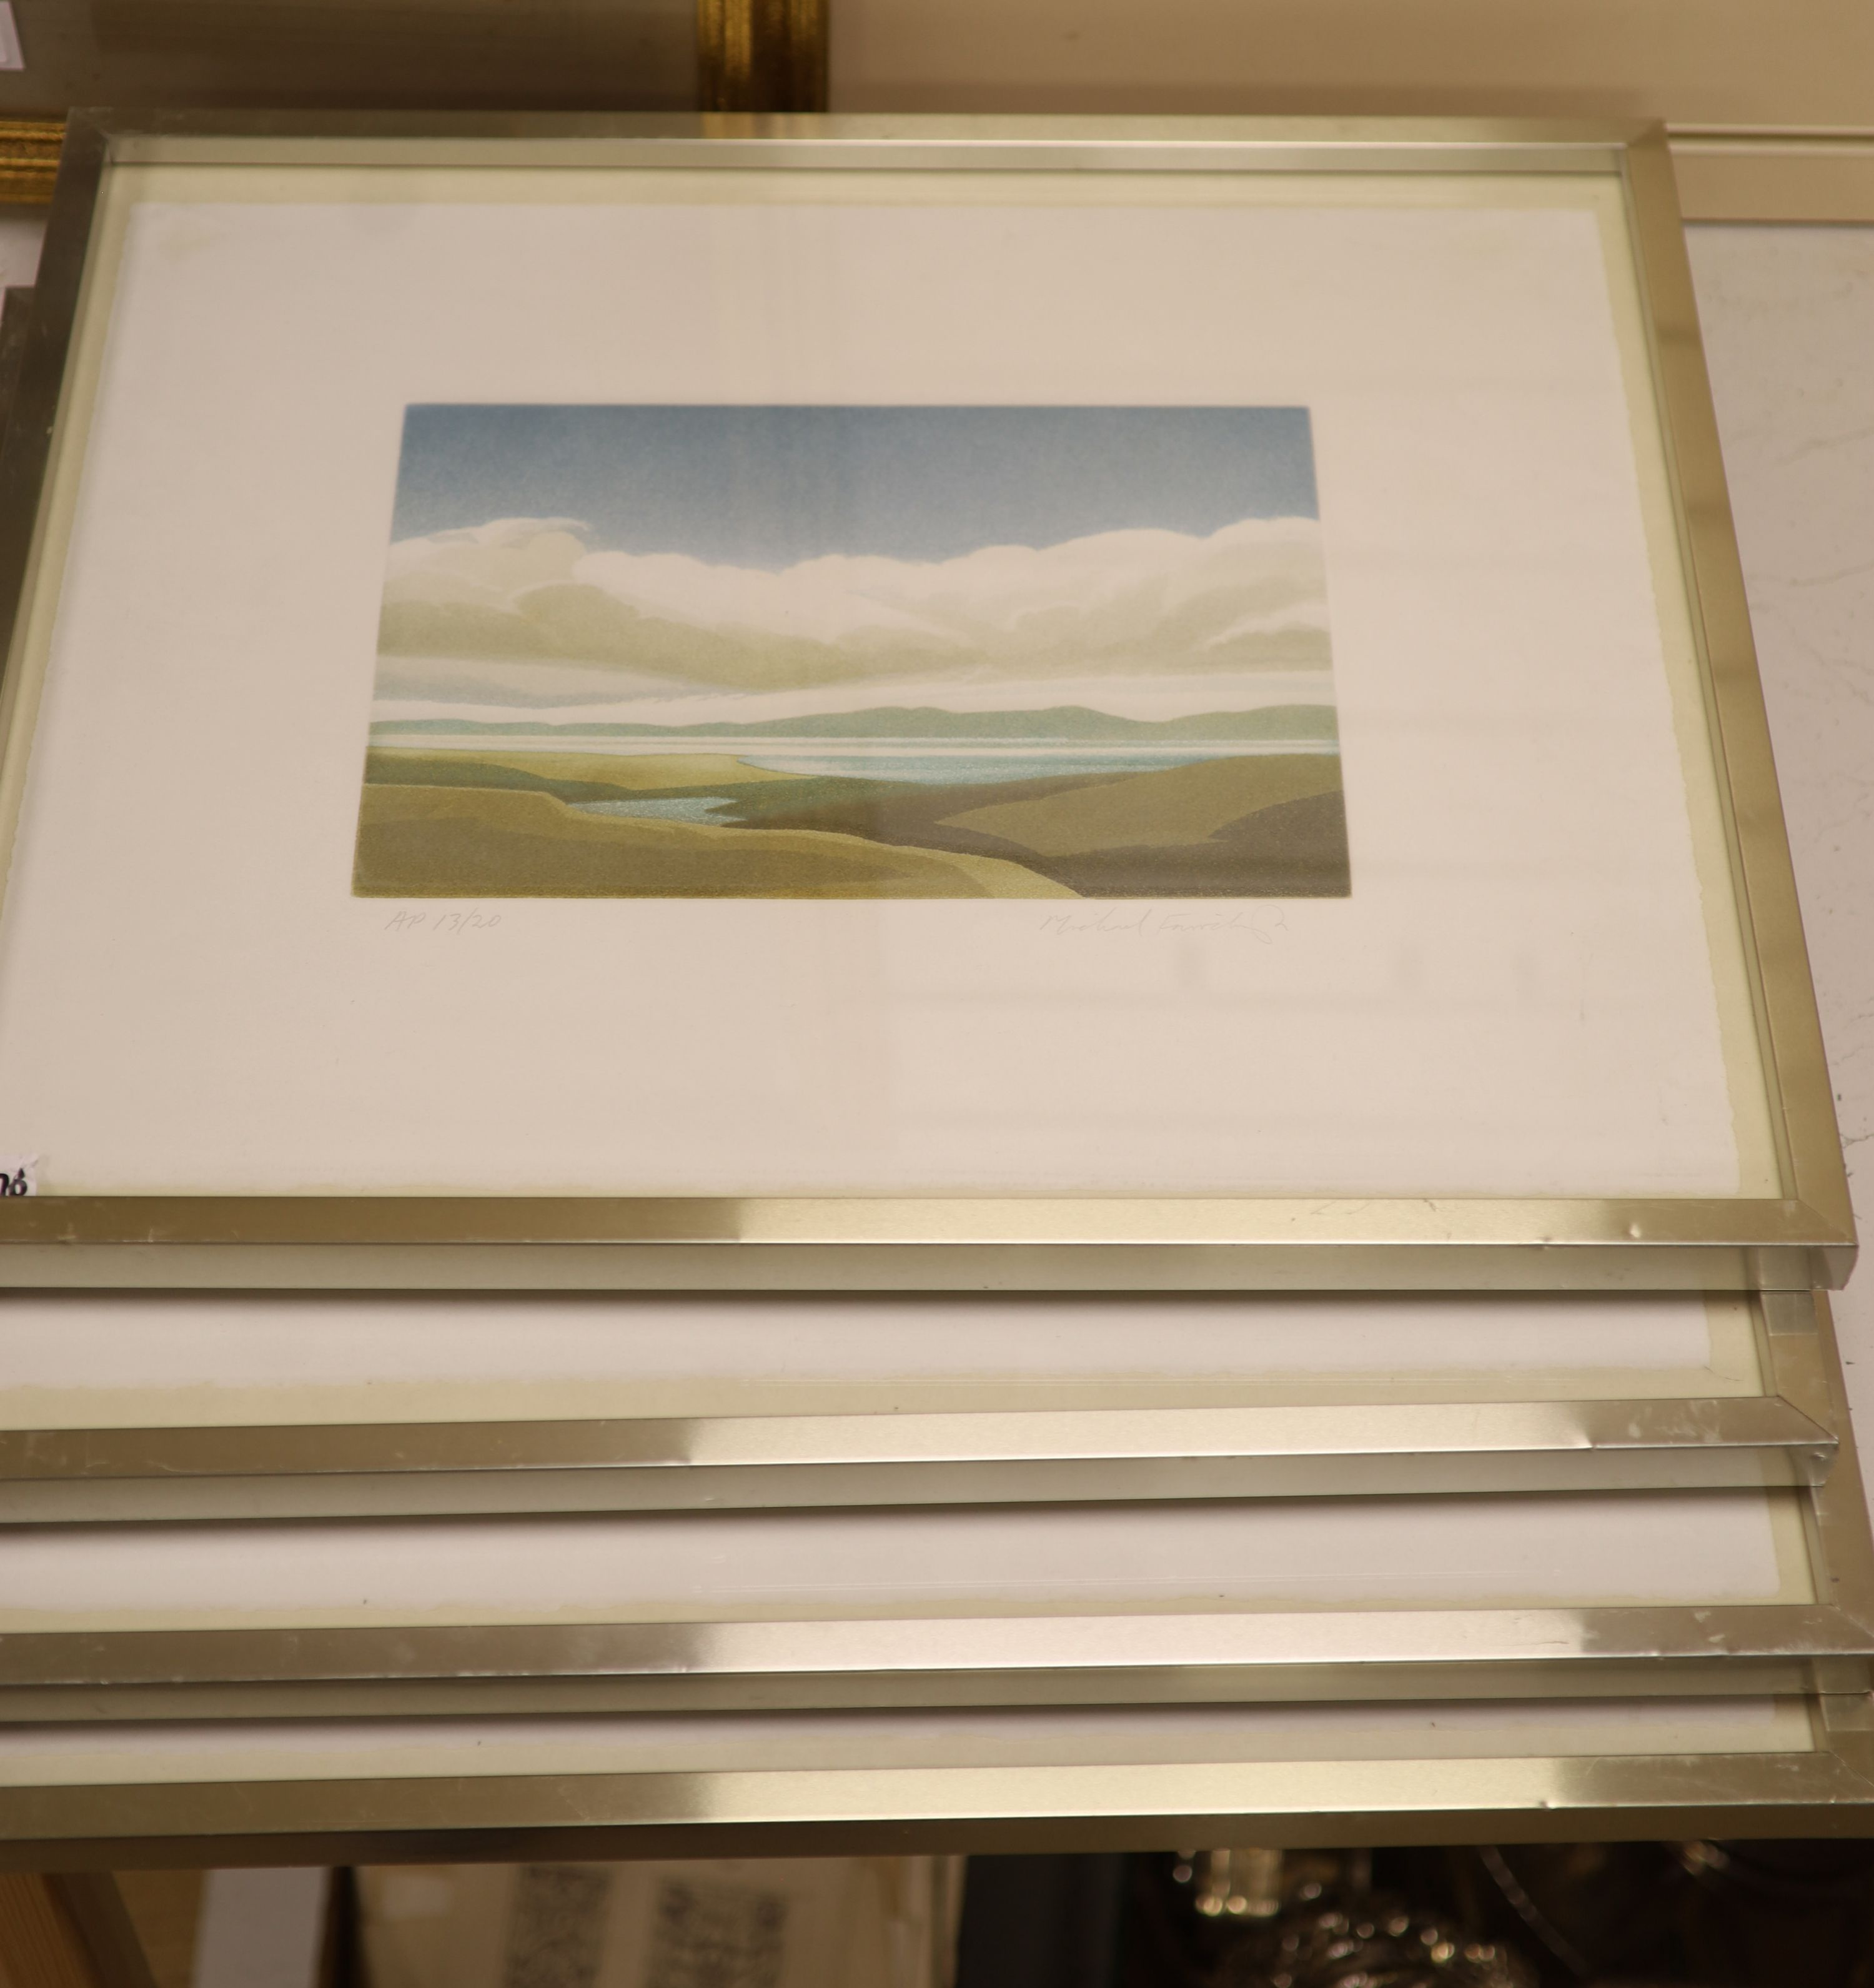 Michael Fairclough (b.1940), a set of four artist proof prints, The Hebredian Suite, signed in